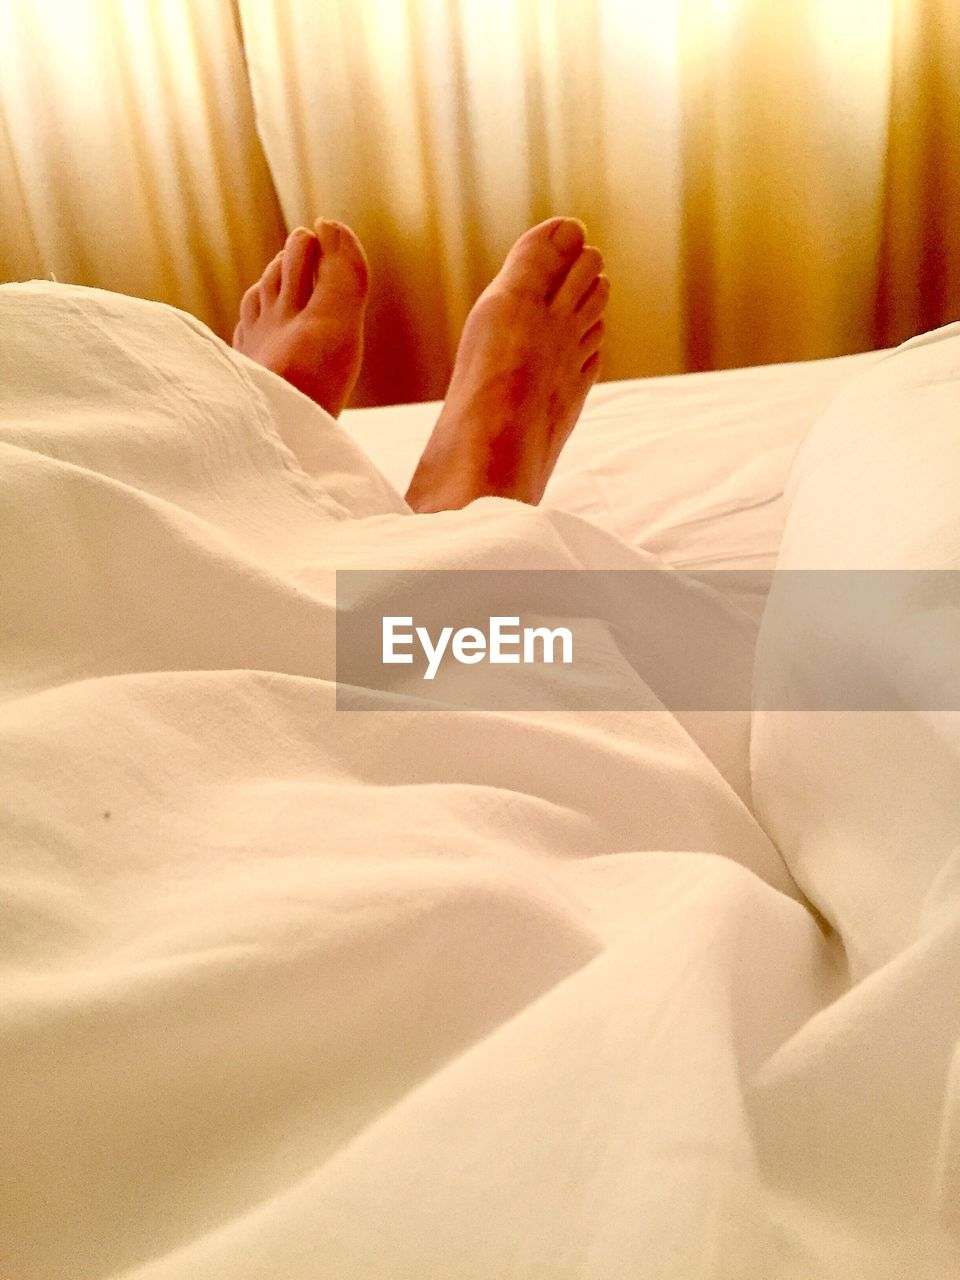 bed, bedroom, relaxation, comfortable, sheet, lying down, barefoot, low section, sleeping, resting, human foot, indoors, one person, real people, home interior, lifestyles, human leg, domestic room, pillow, close-up, day, people